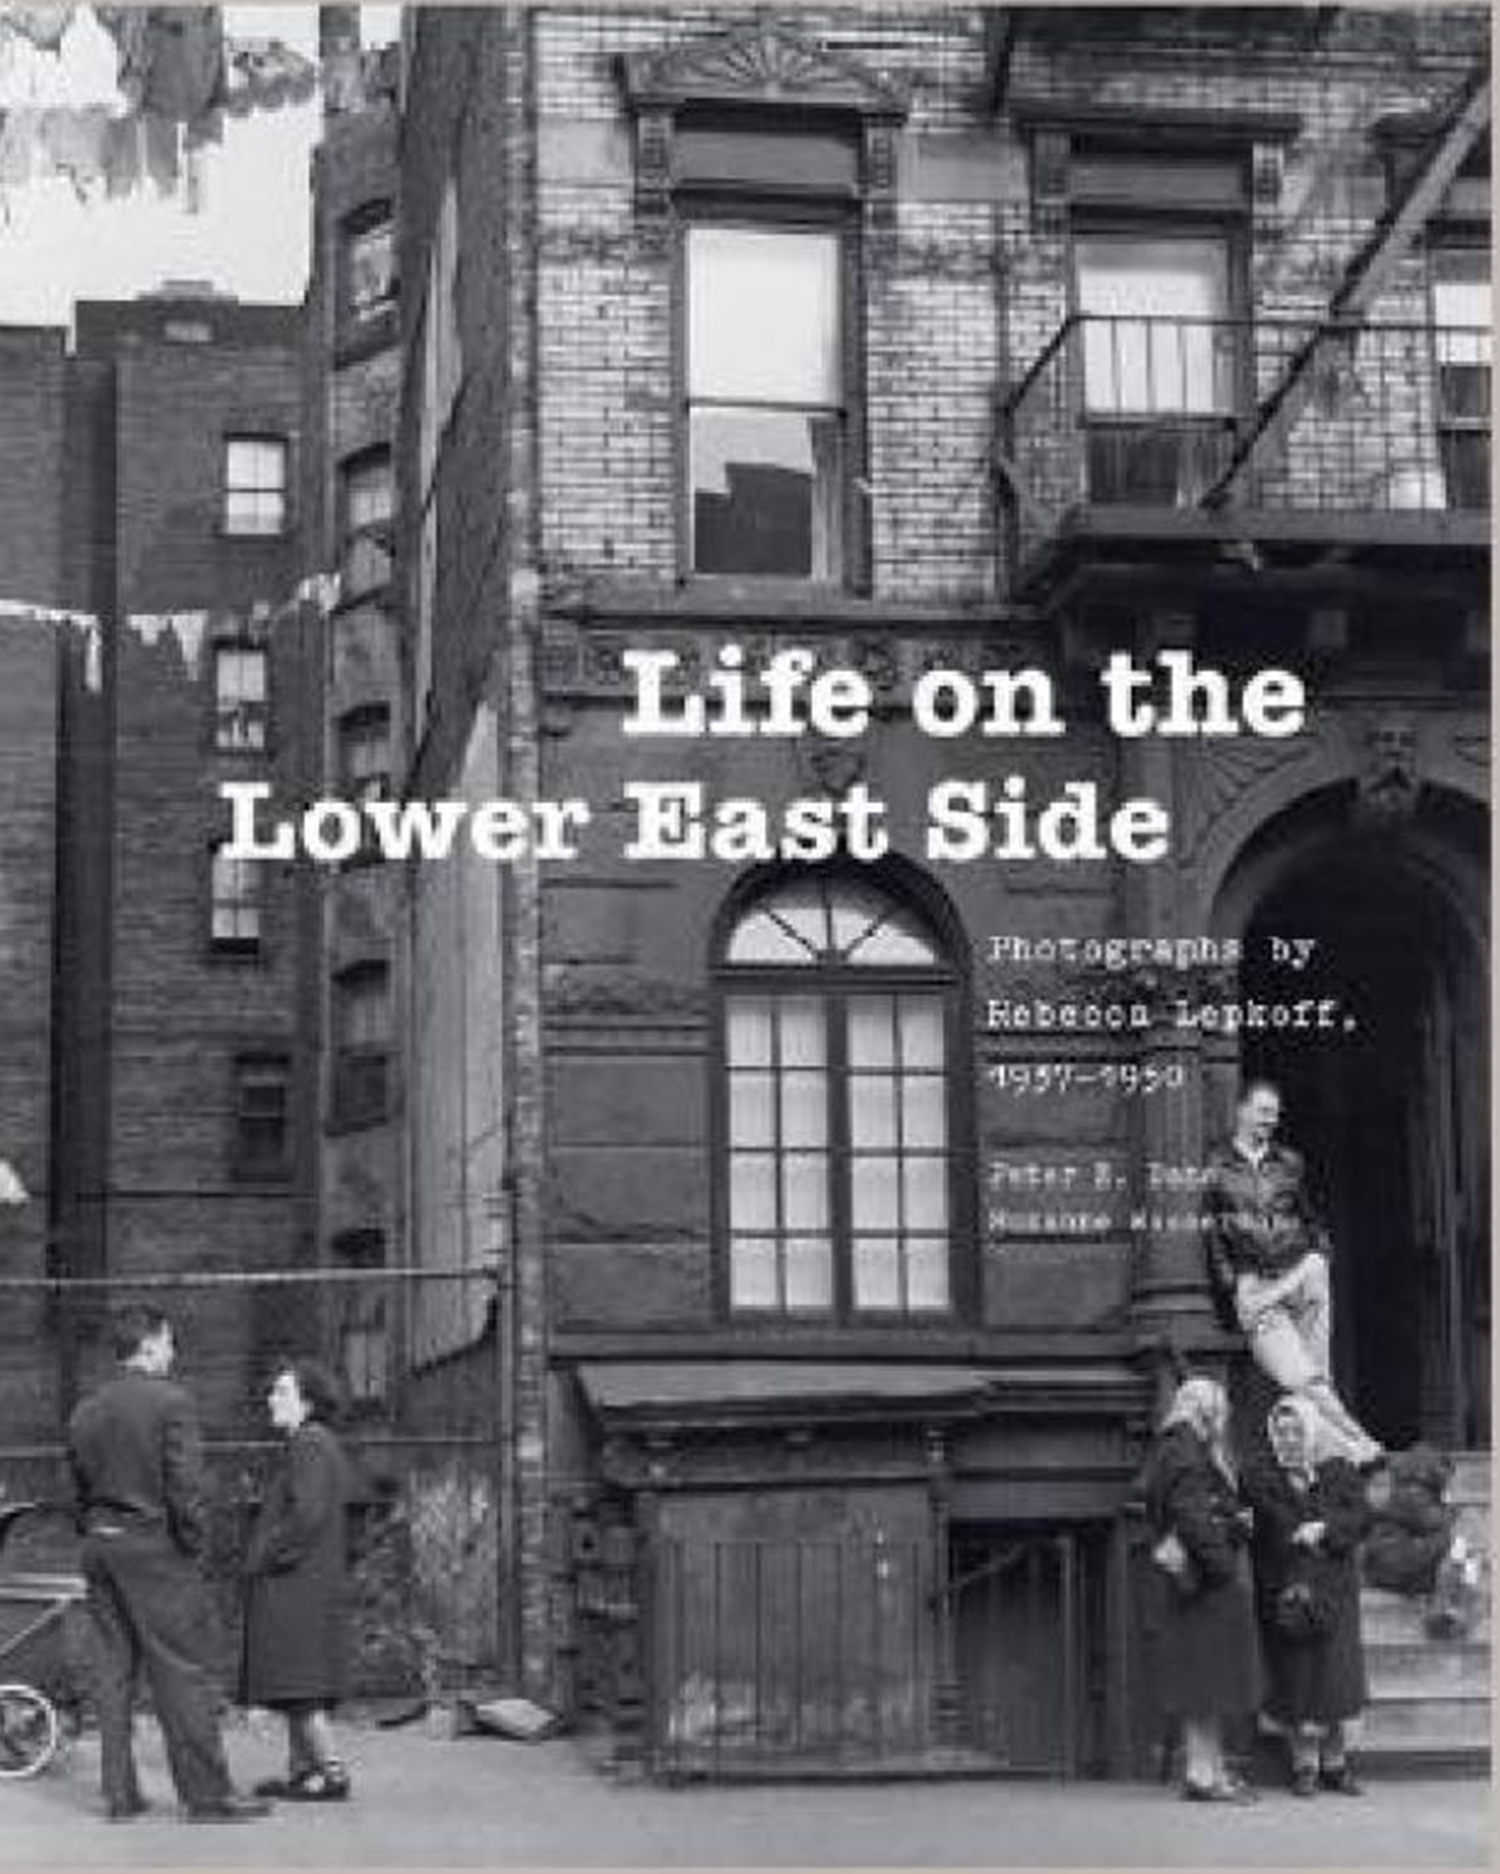 life-on-the-lower-east-side-photographs-by-rebecca-lepkoff-1937-original-imaeas33hxk58k2r.jpg